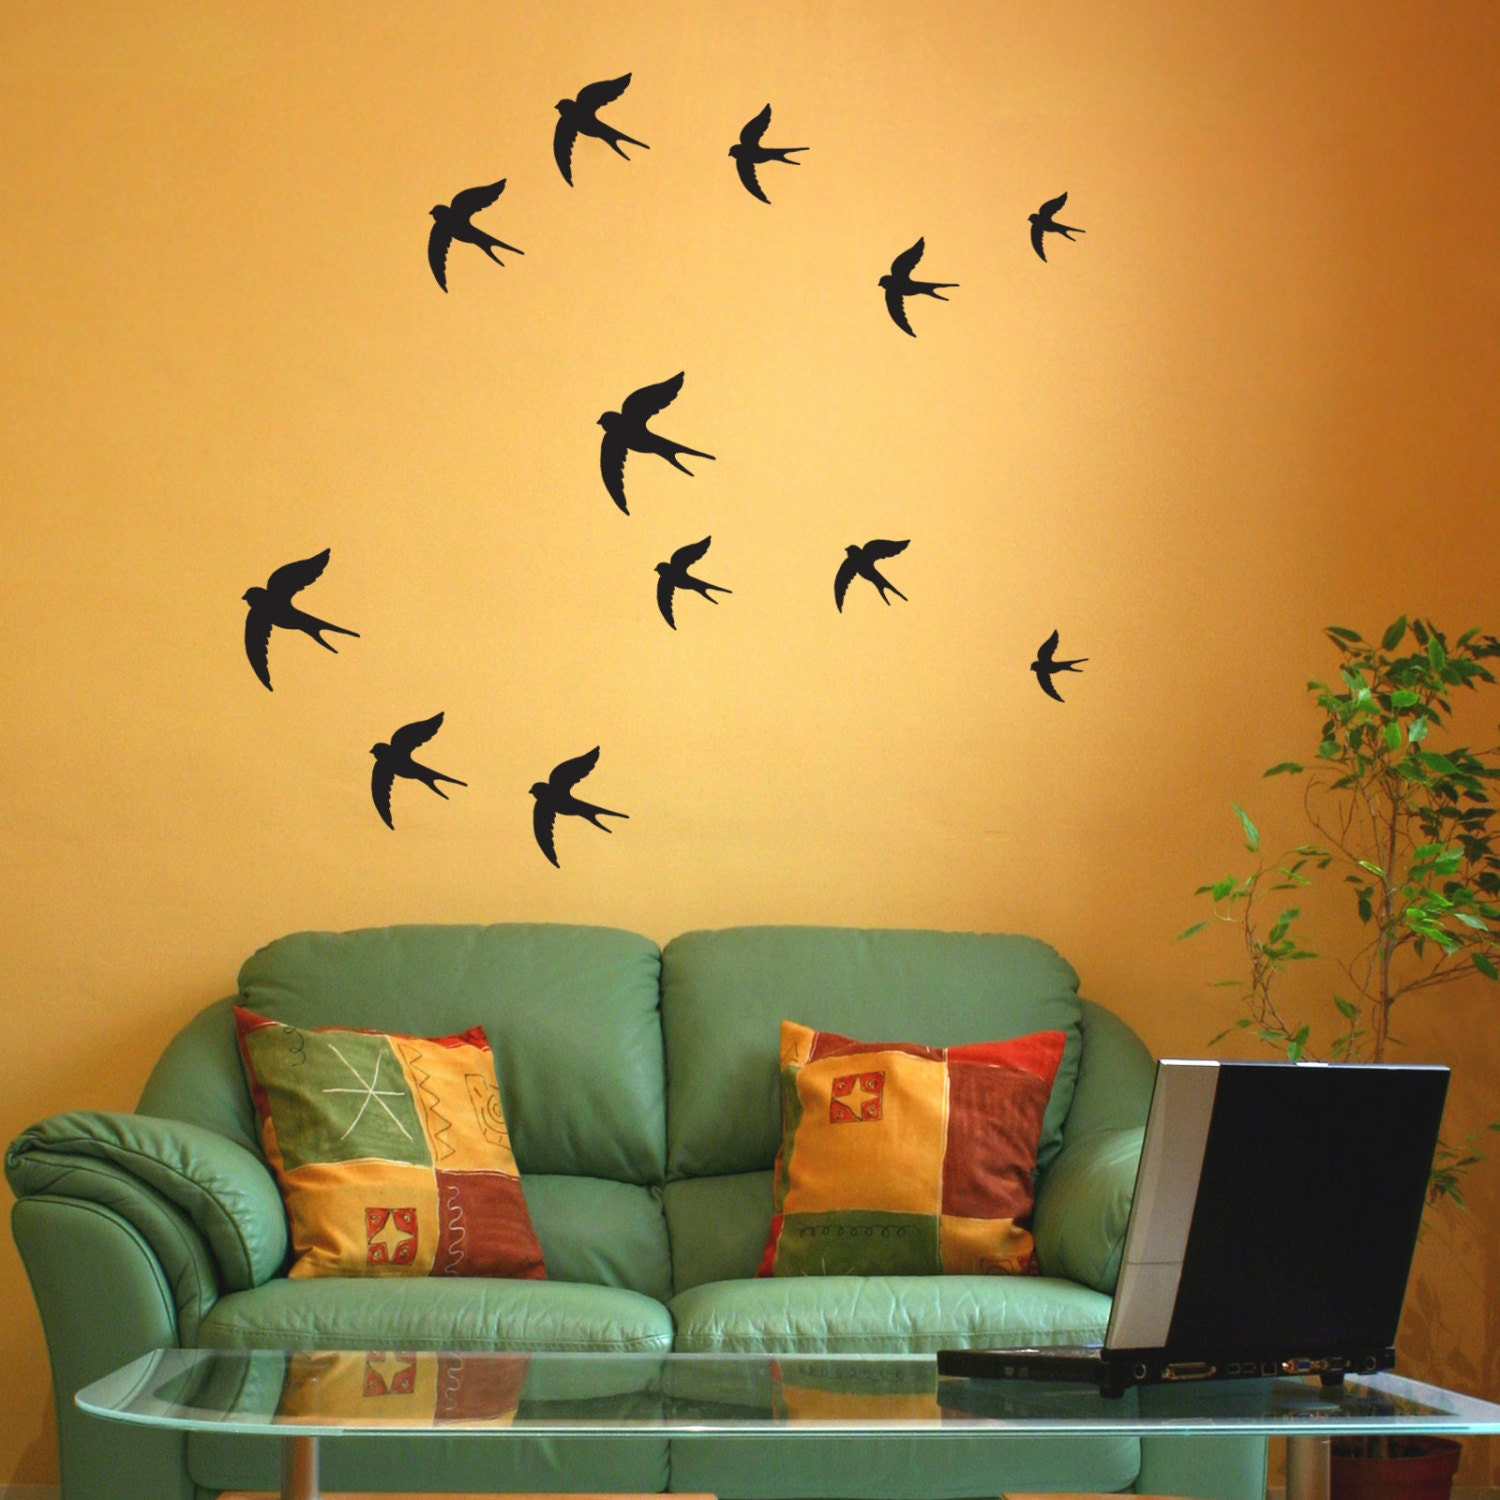 Swallow Wall Stickers Birds wall decal Pack of 12 or 24 | Etsy